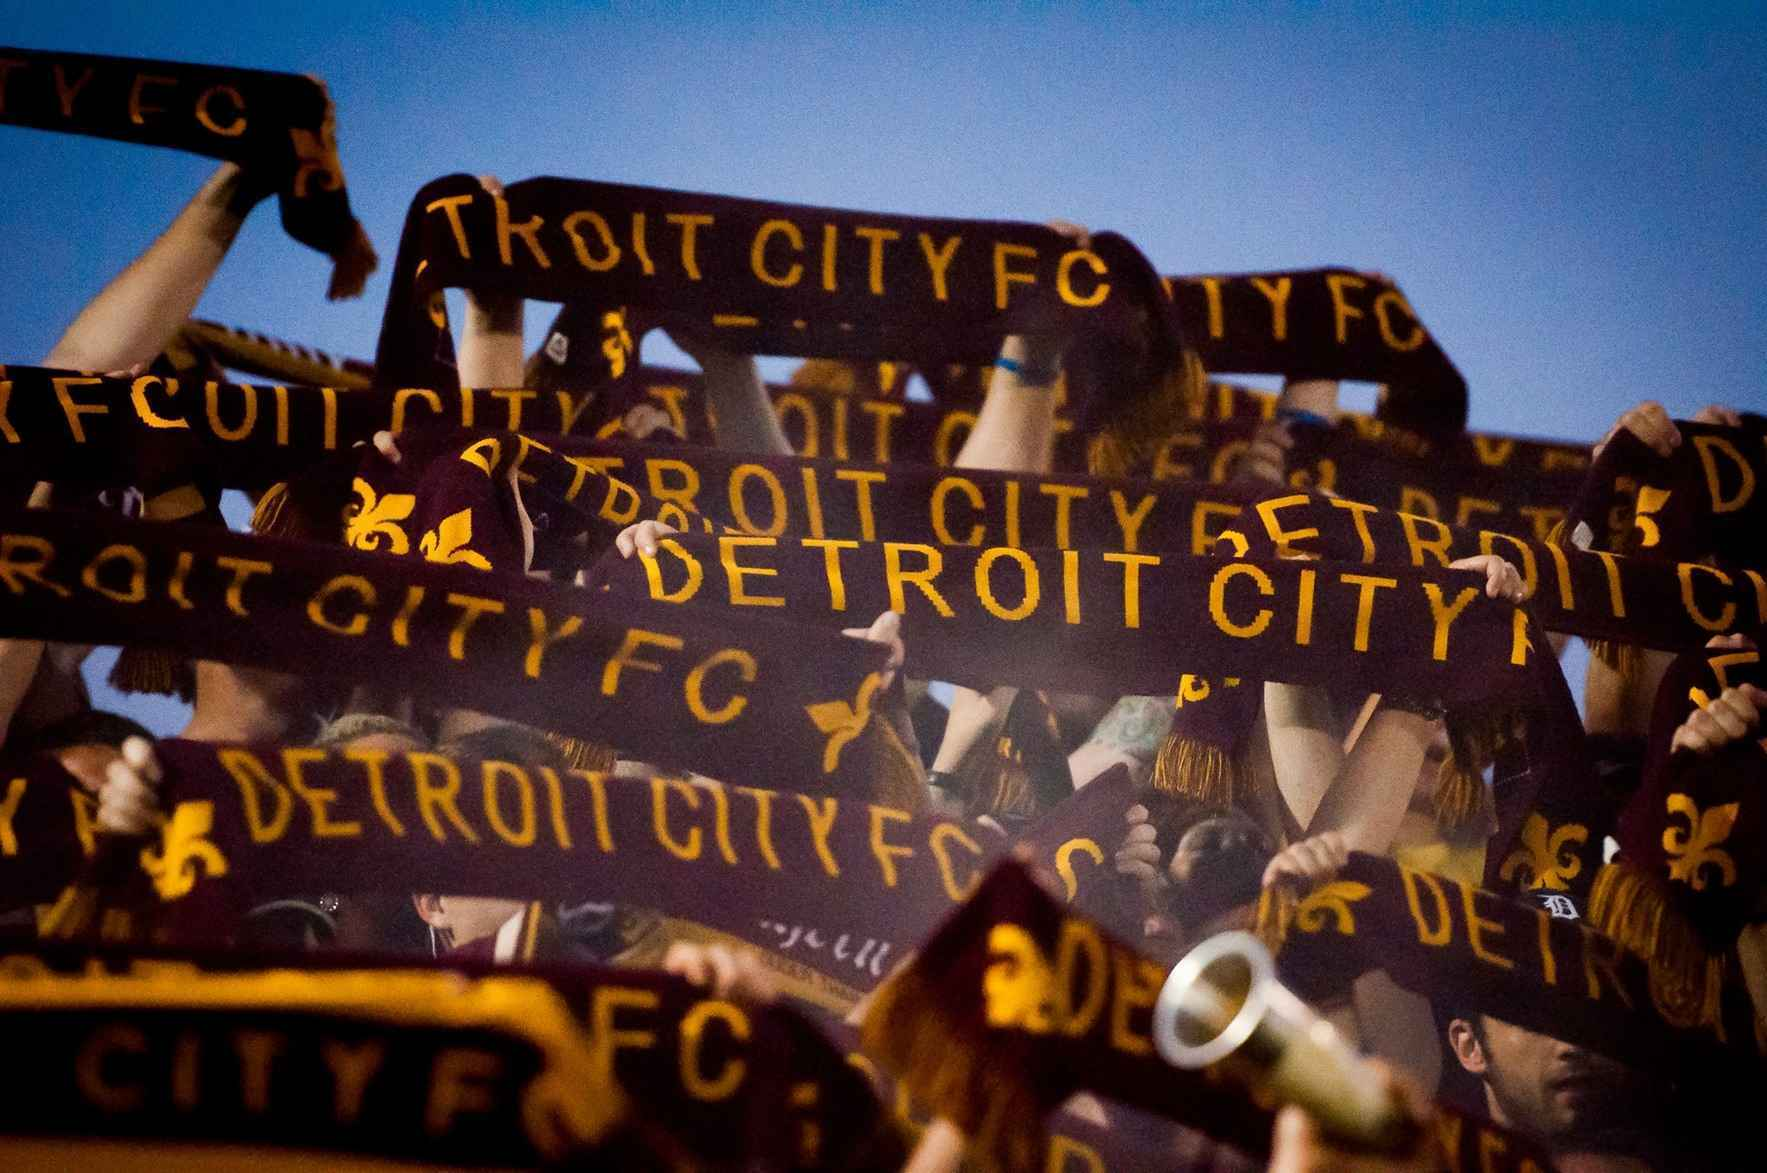 The Motor City Friendly image